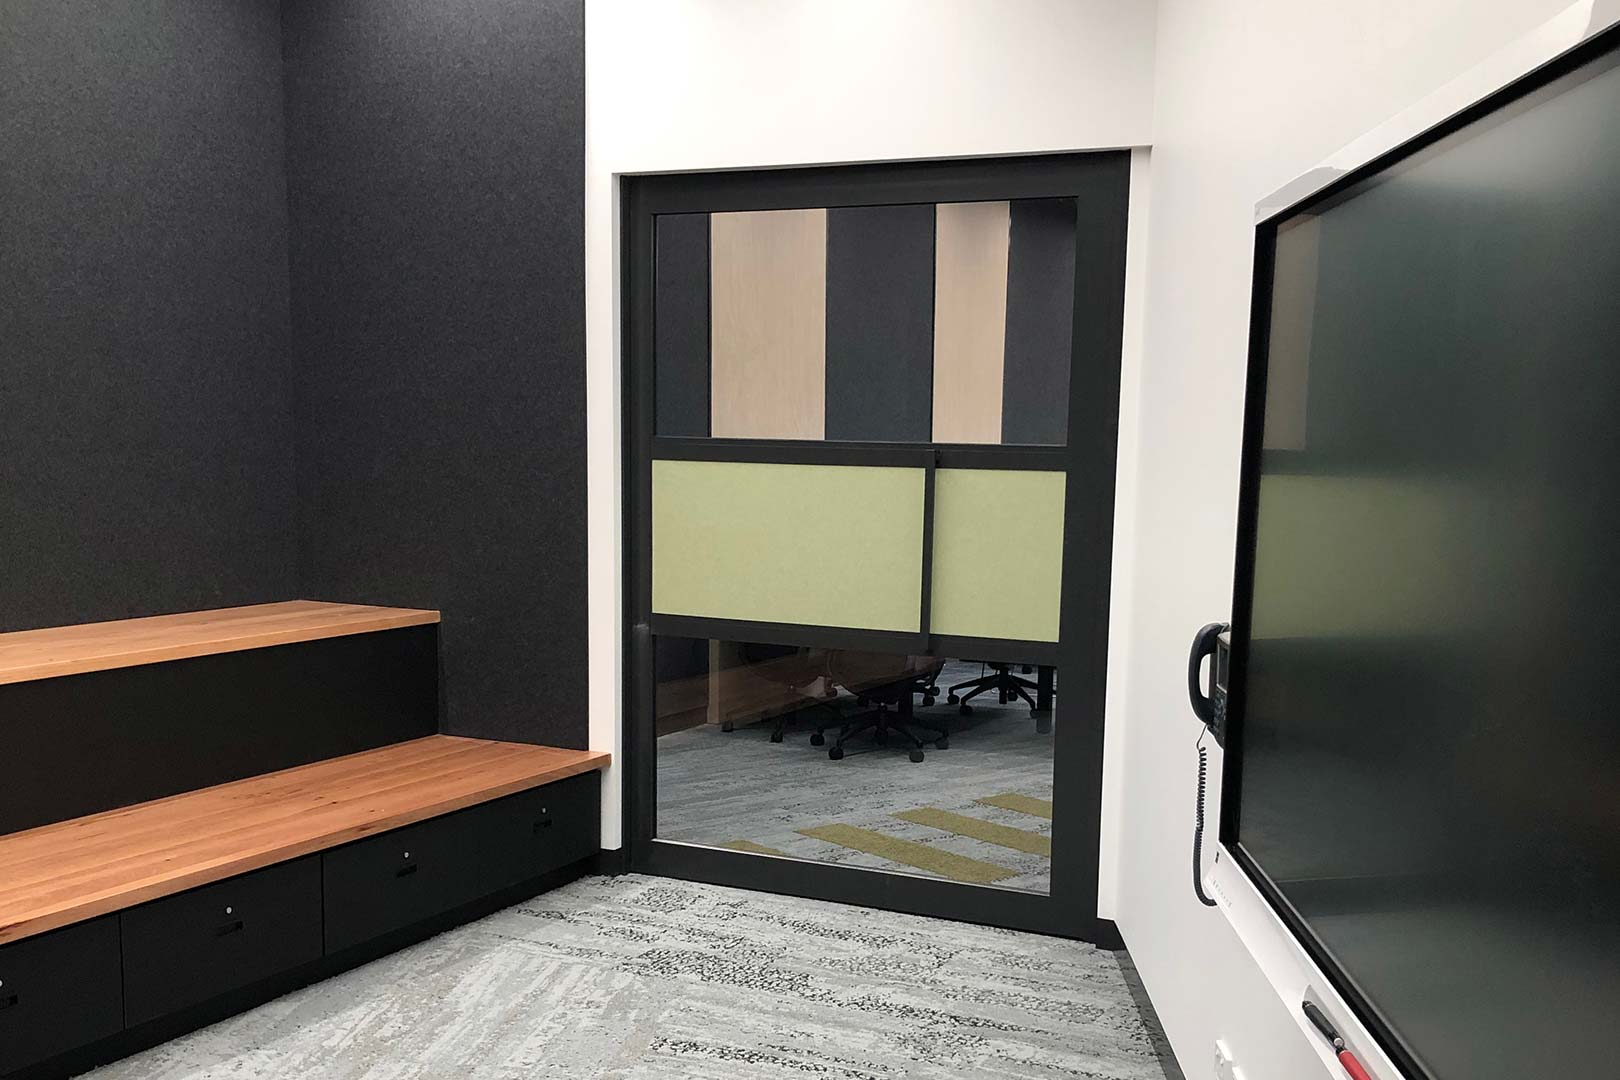 image of acoustic sliding door system installed in a university